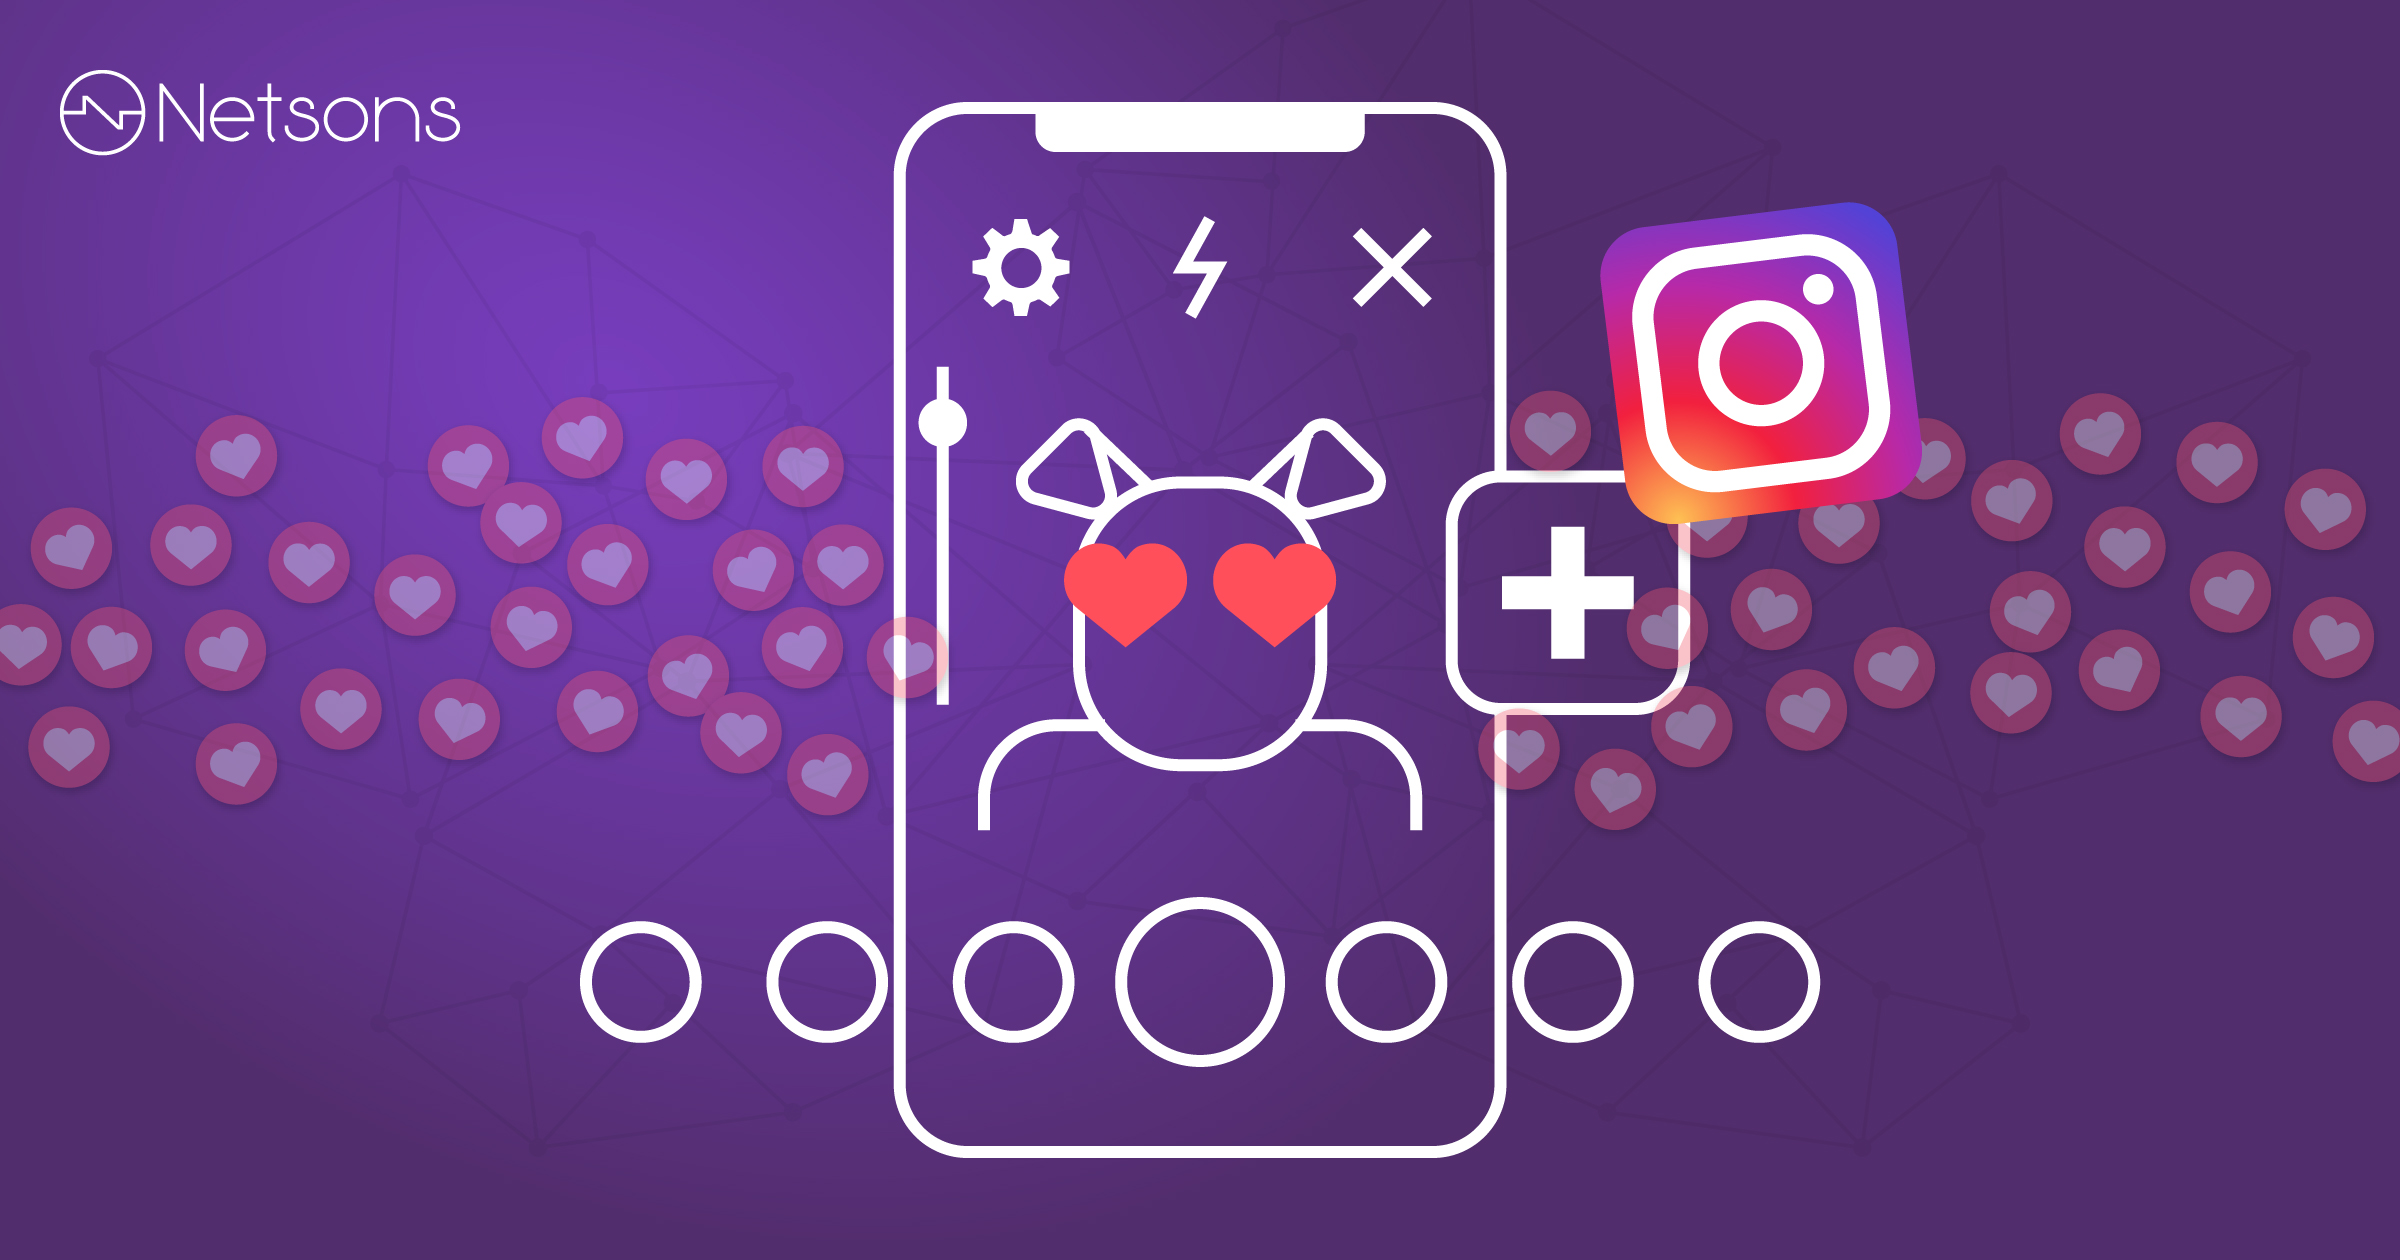 Come creare un filtro per le Instagram stories 1